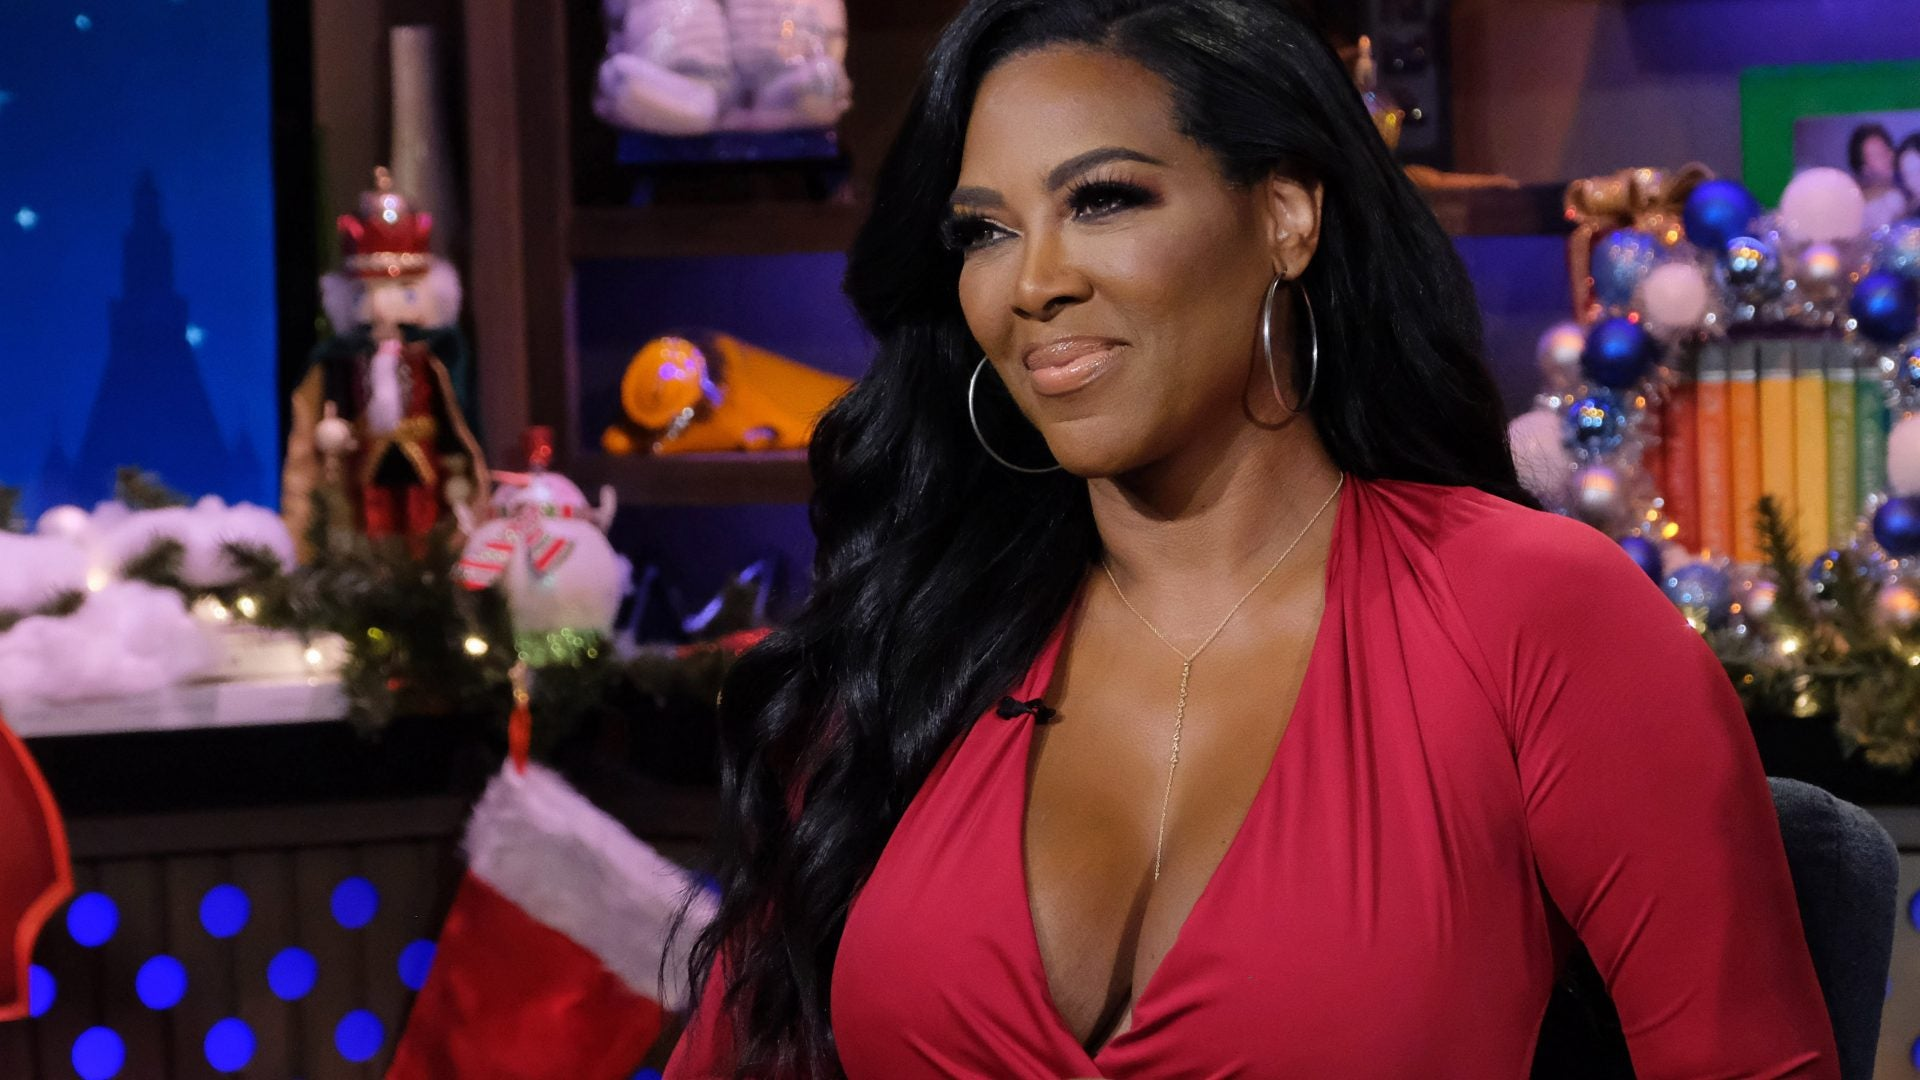 Kenya Moore Tells Fans That They Should Be The Bosses That They Always Wanted To Be